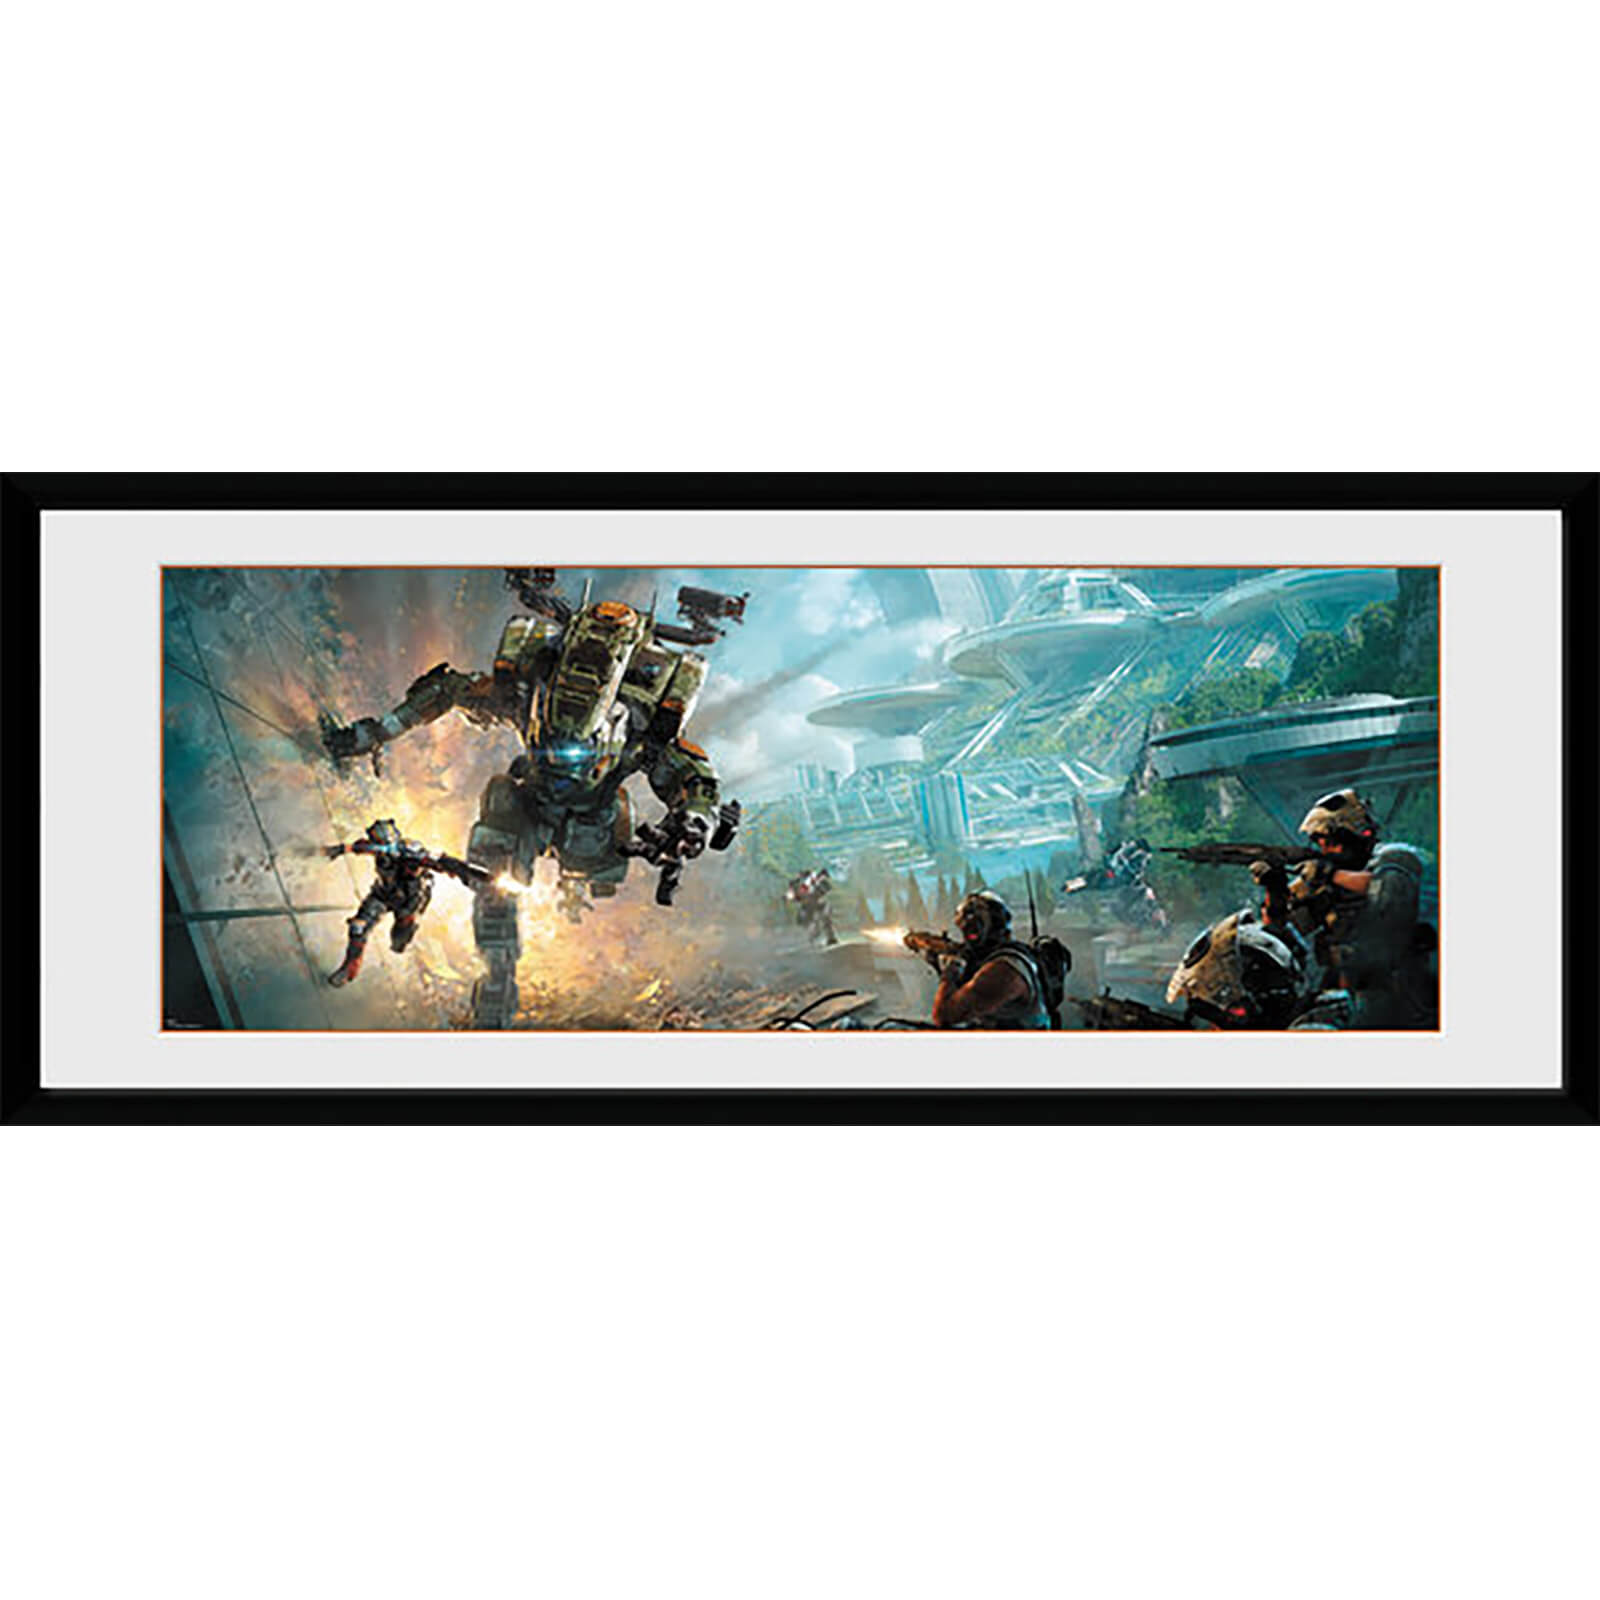 Titanfall 2 Key Art - 30 x 12 Inches Framed Photograph